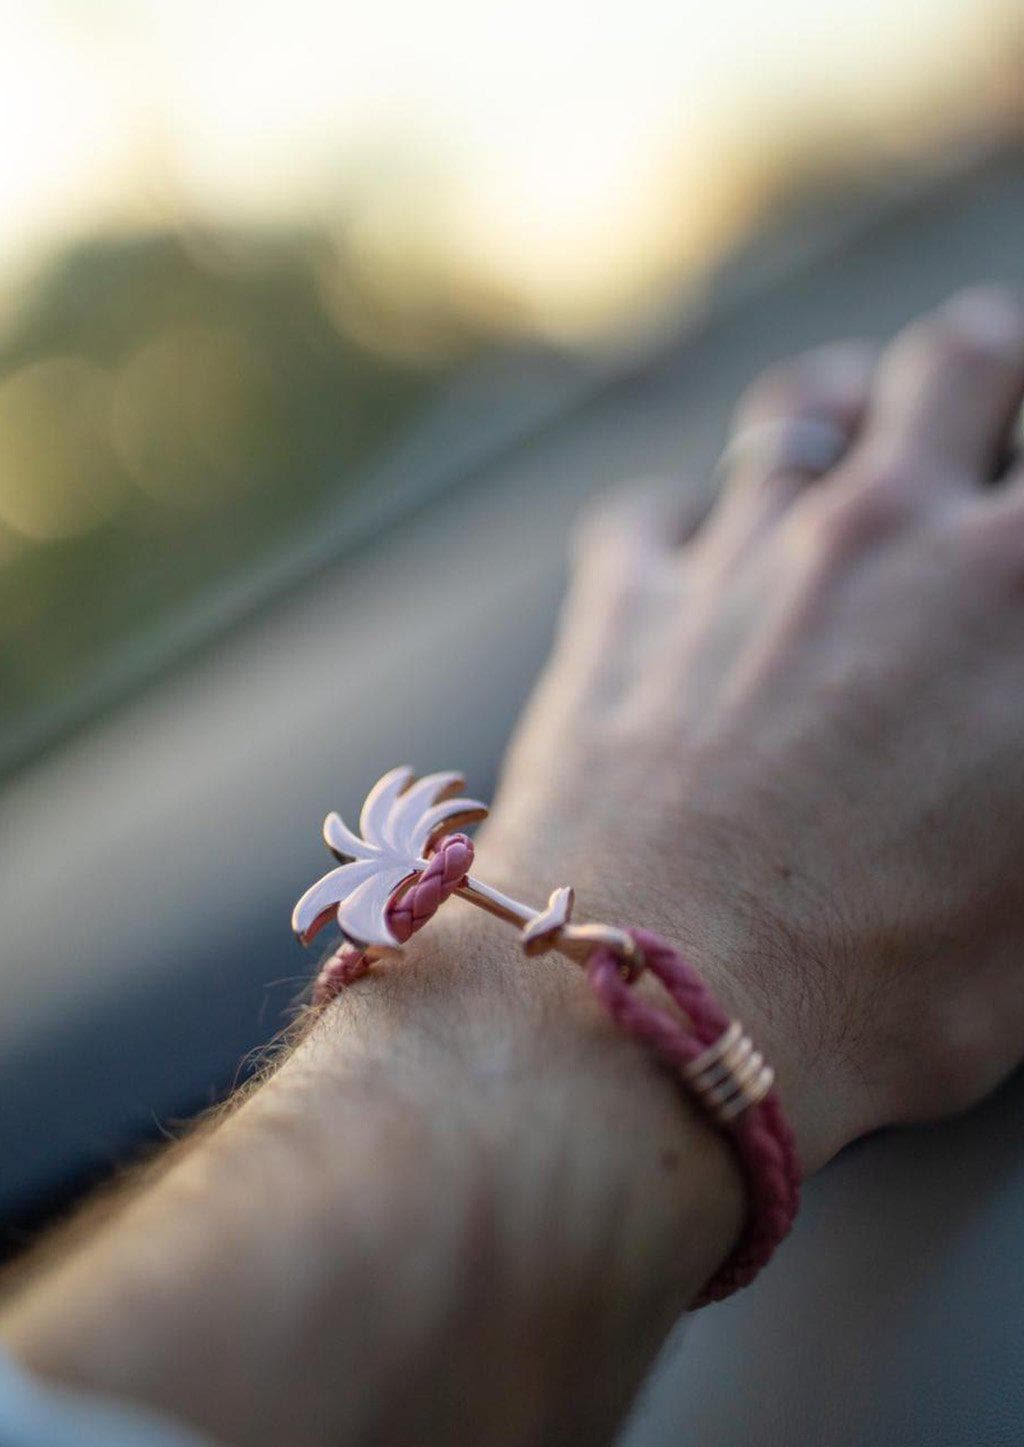 Flamingo Rose - Palm anchor bracelet with pink leather. On male models wrist.